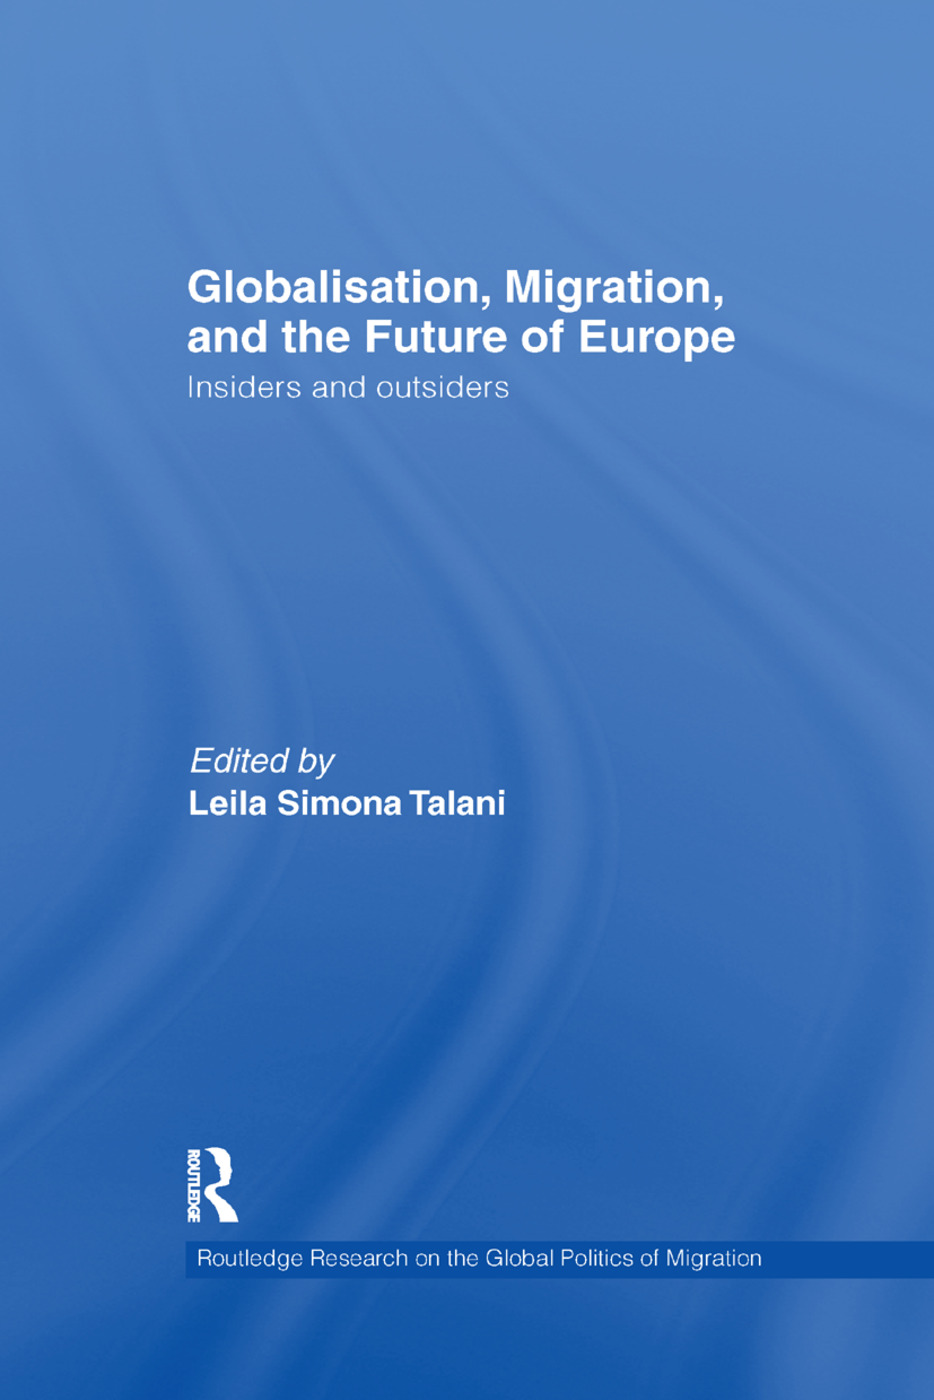 Globalisation, Migration, and the Future of Europe